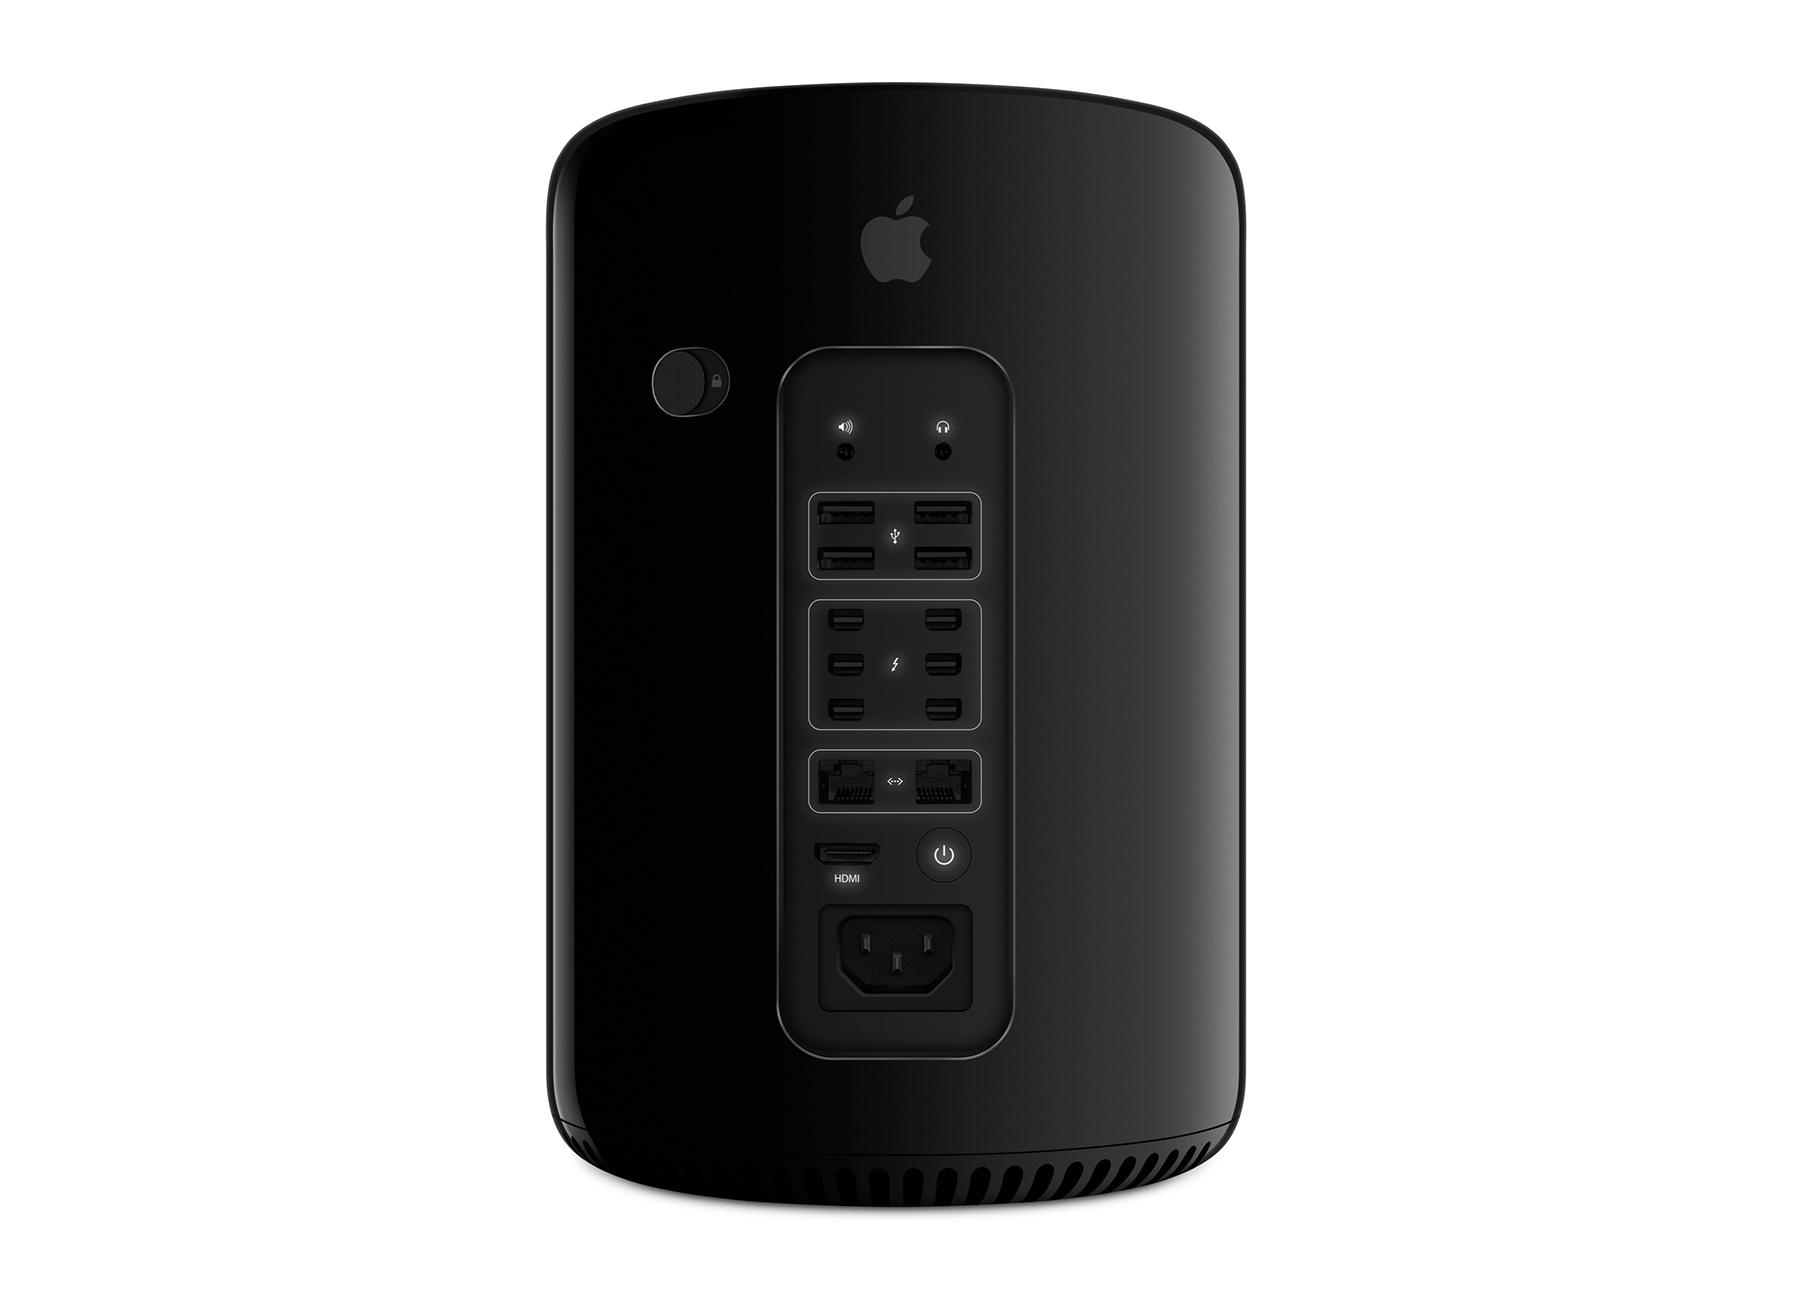 maxed out mac pro 2013